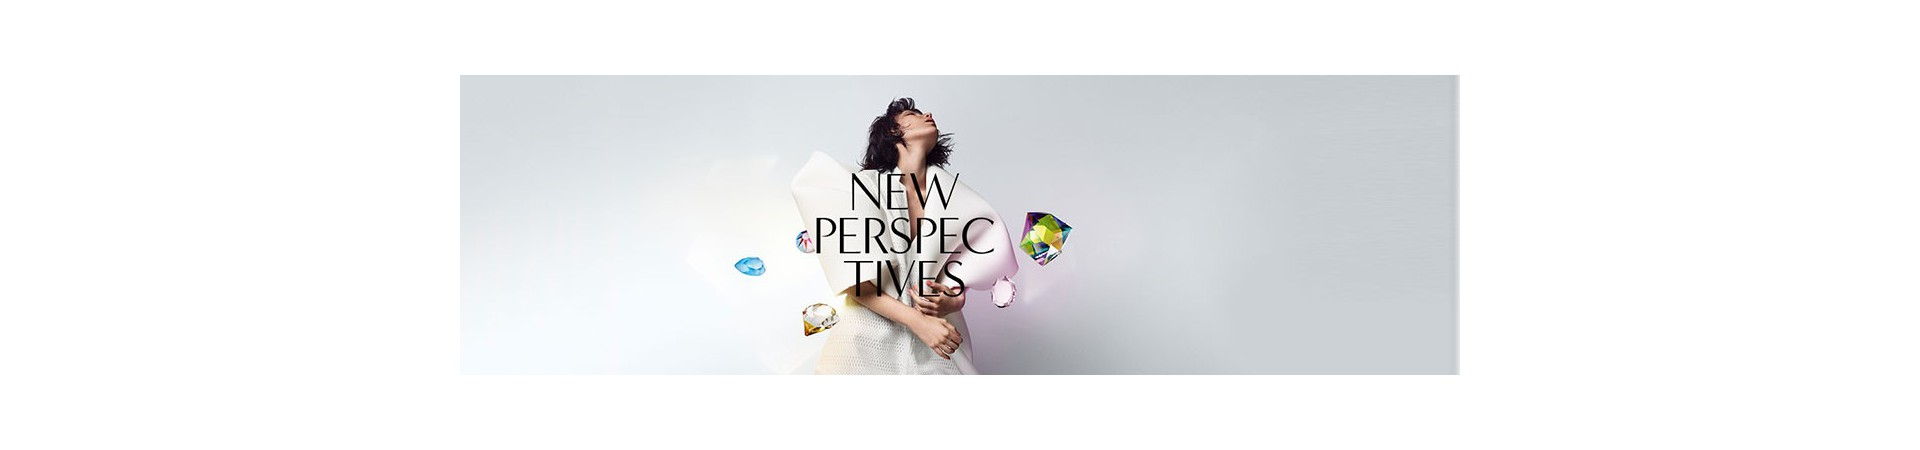 New Perspectives Spring/Summer 2018